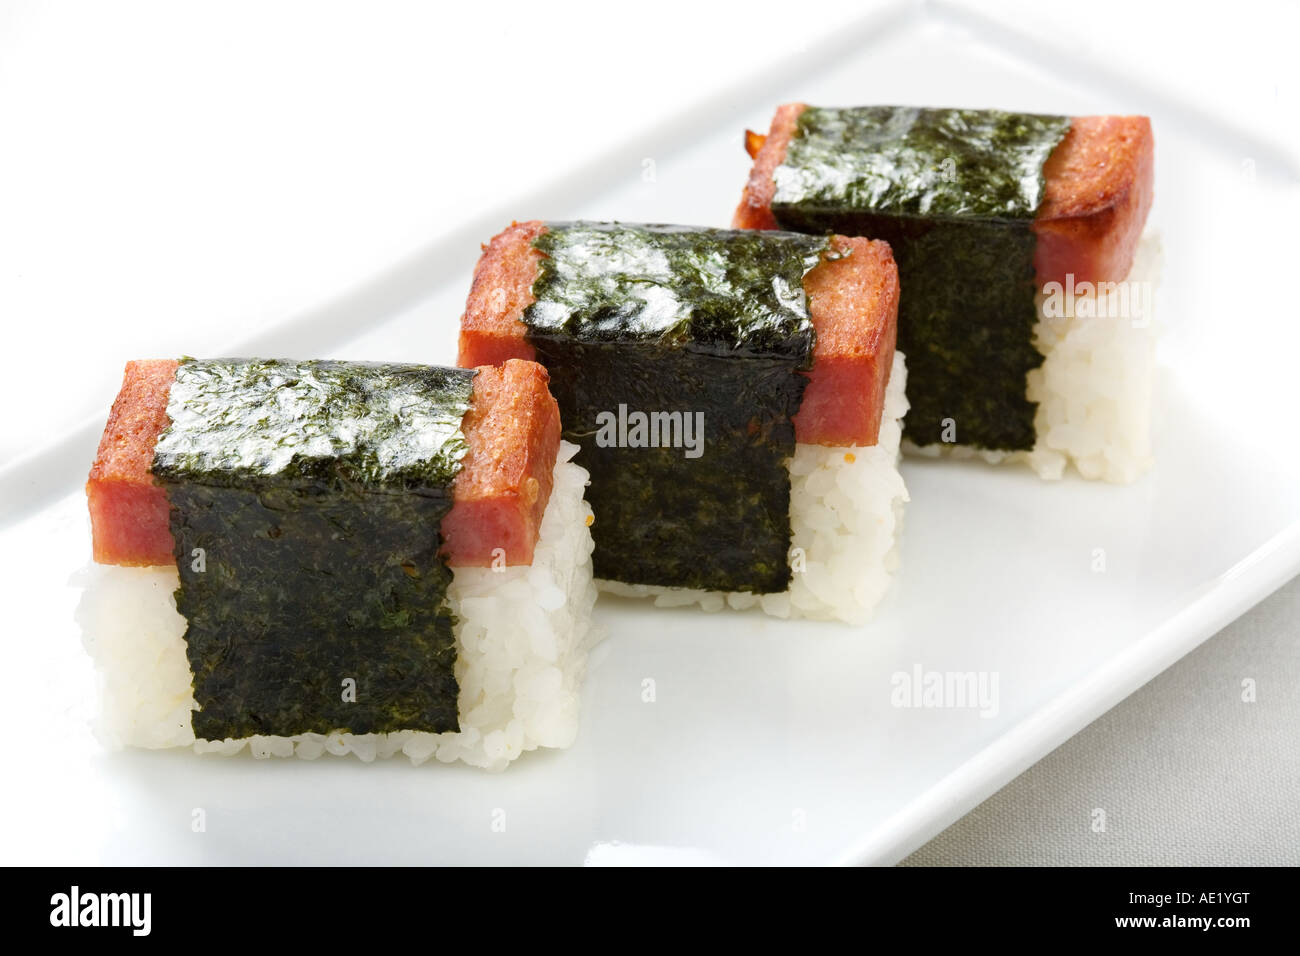 A Japanese dish on a plate consisting of three pieces of rice wraps. - Stock Image